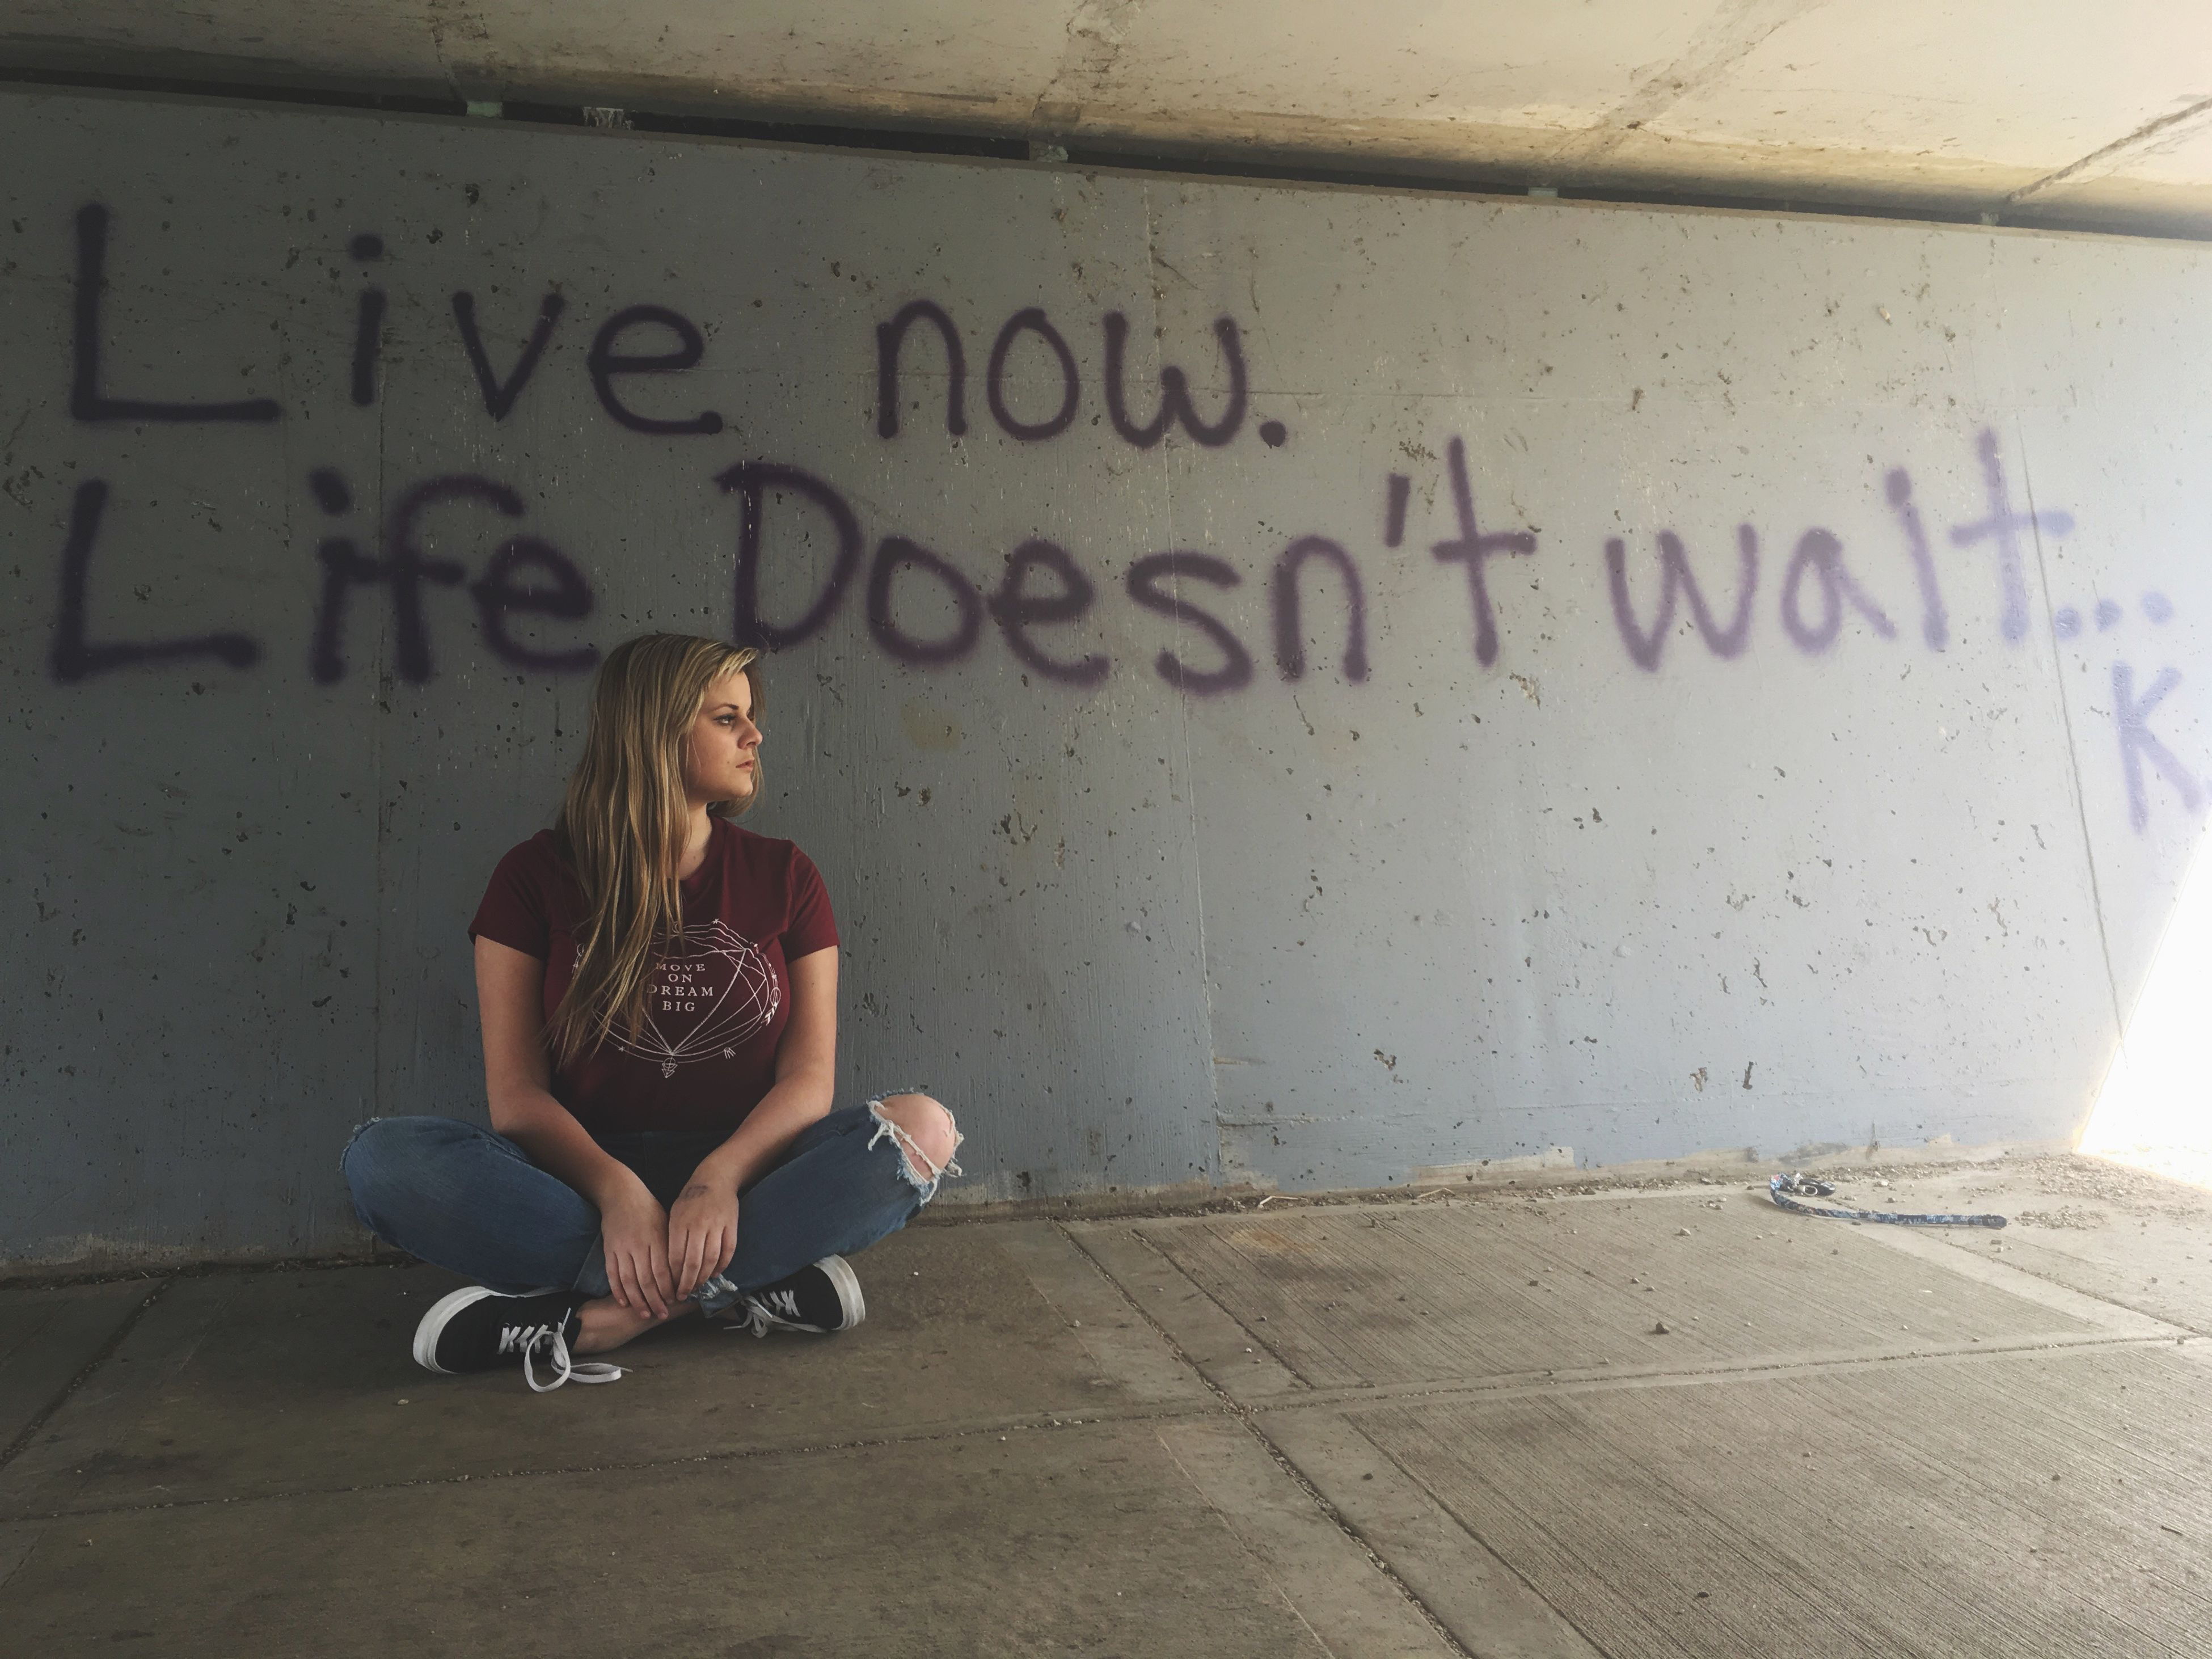 lifestyles, casual clothing, full length, leisure activity, text, communication, wall - building feature, young adult, standing, person, western script, graffiti, young women, front view, street, men, architecture